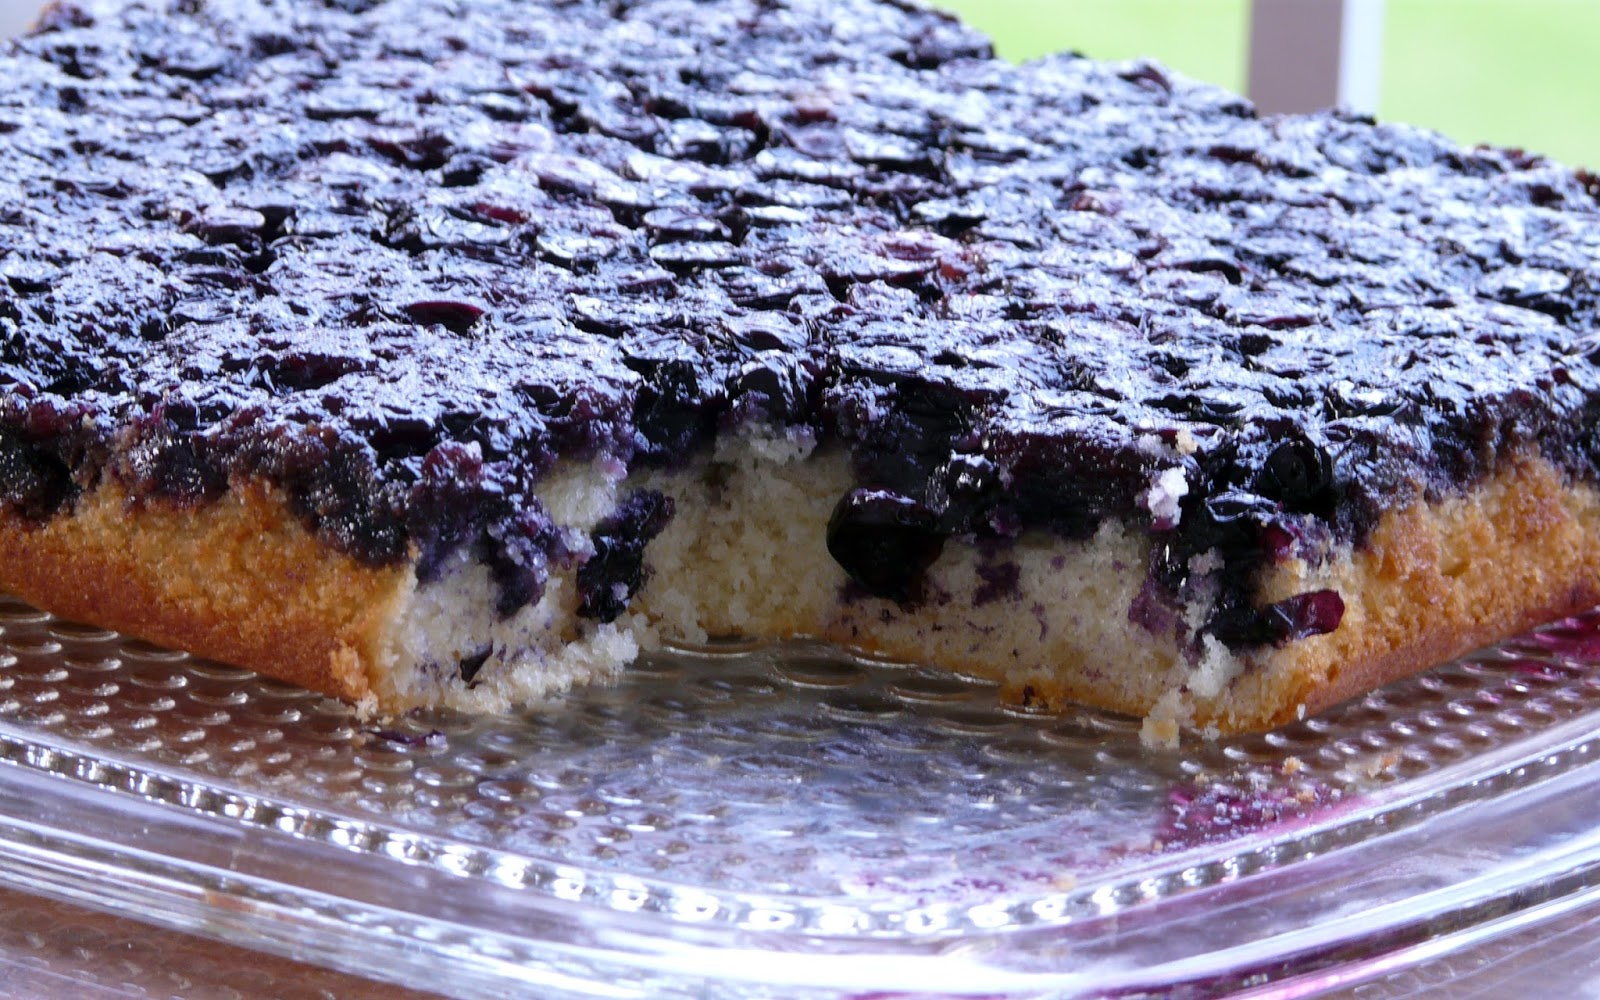 Blueberry Upside Down Cake Using Cake Mix